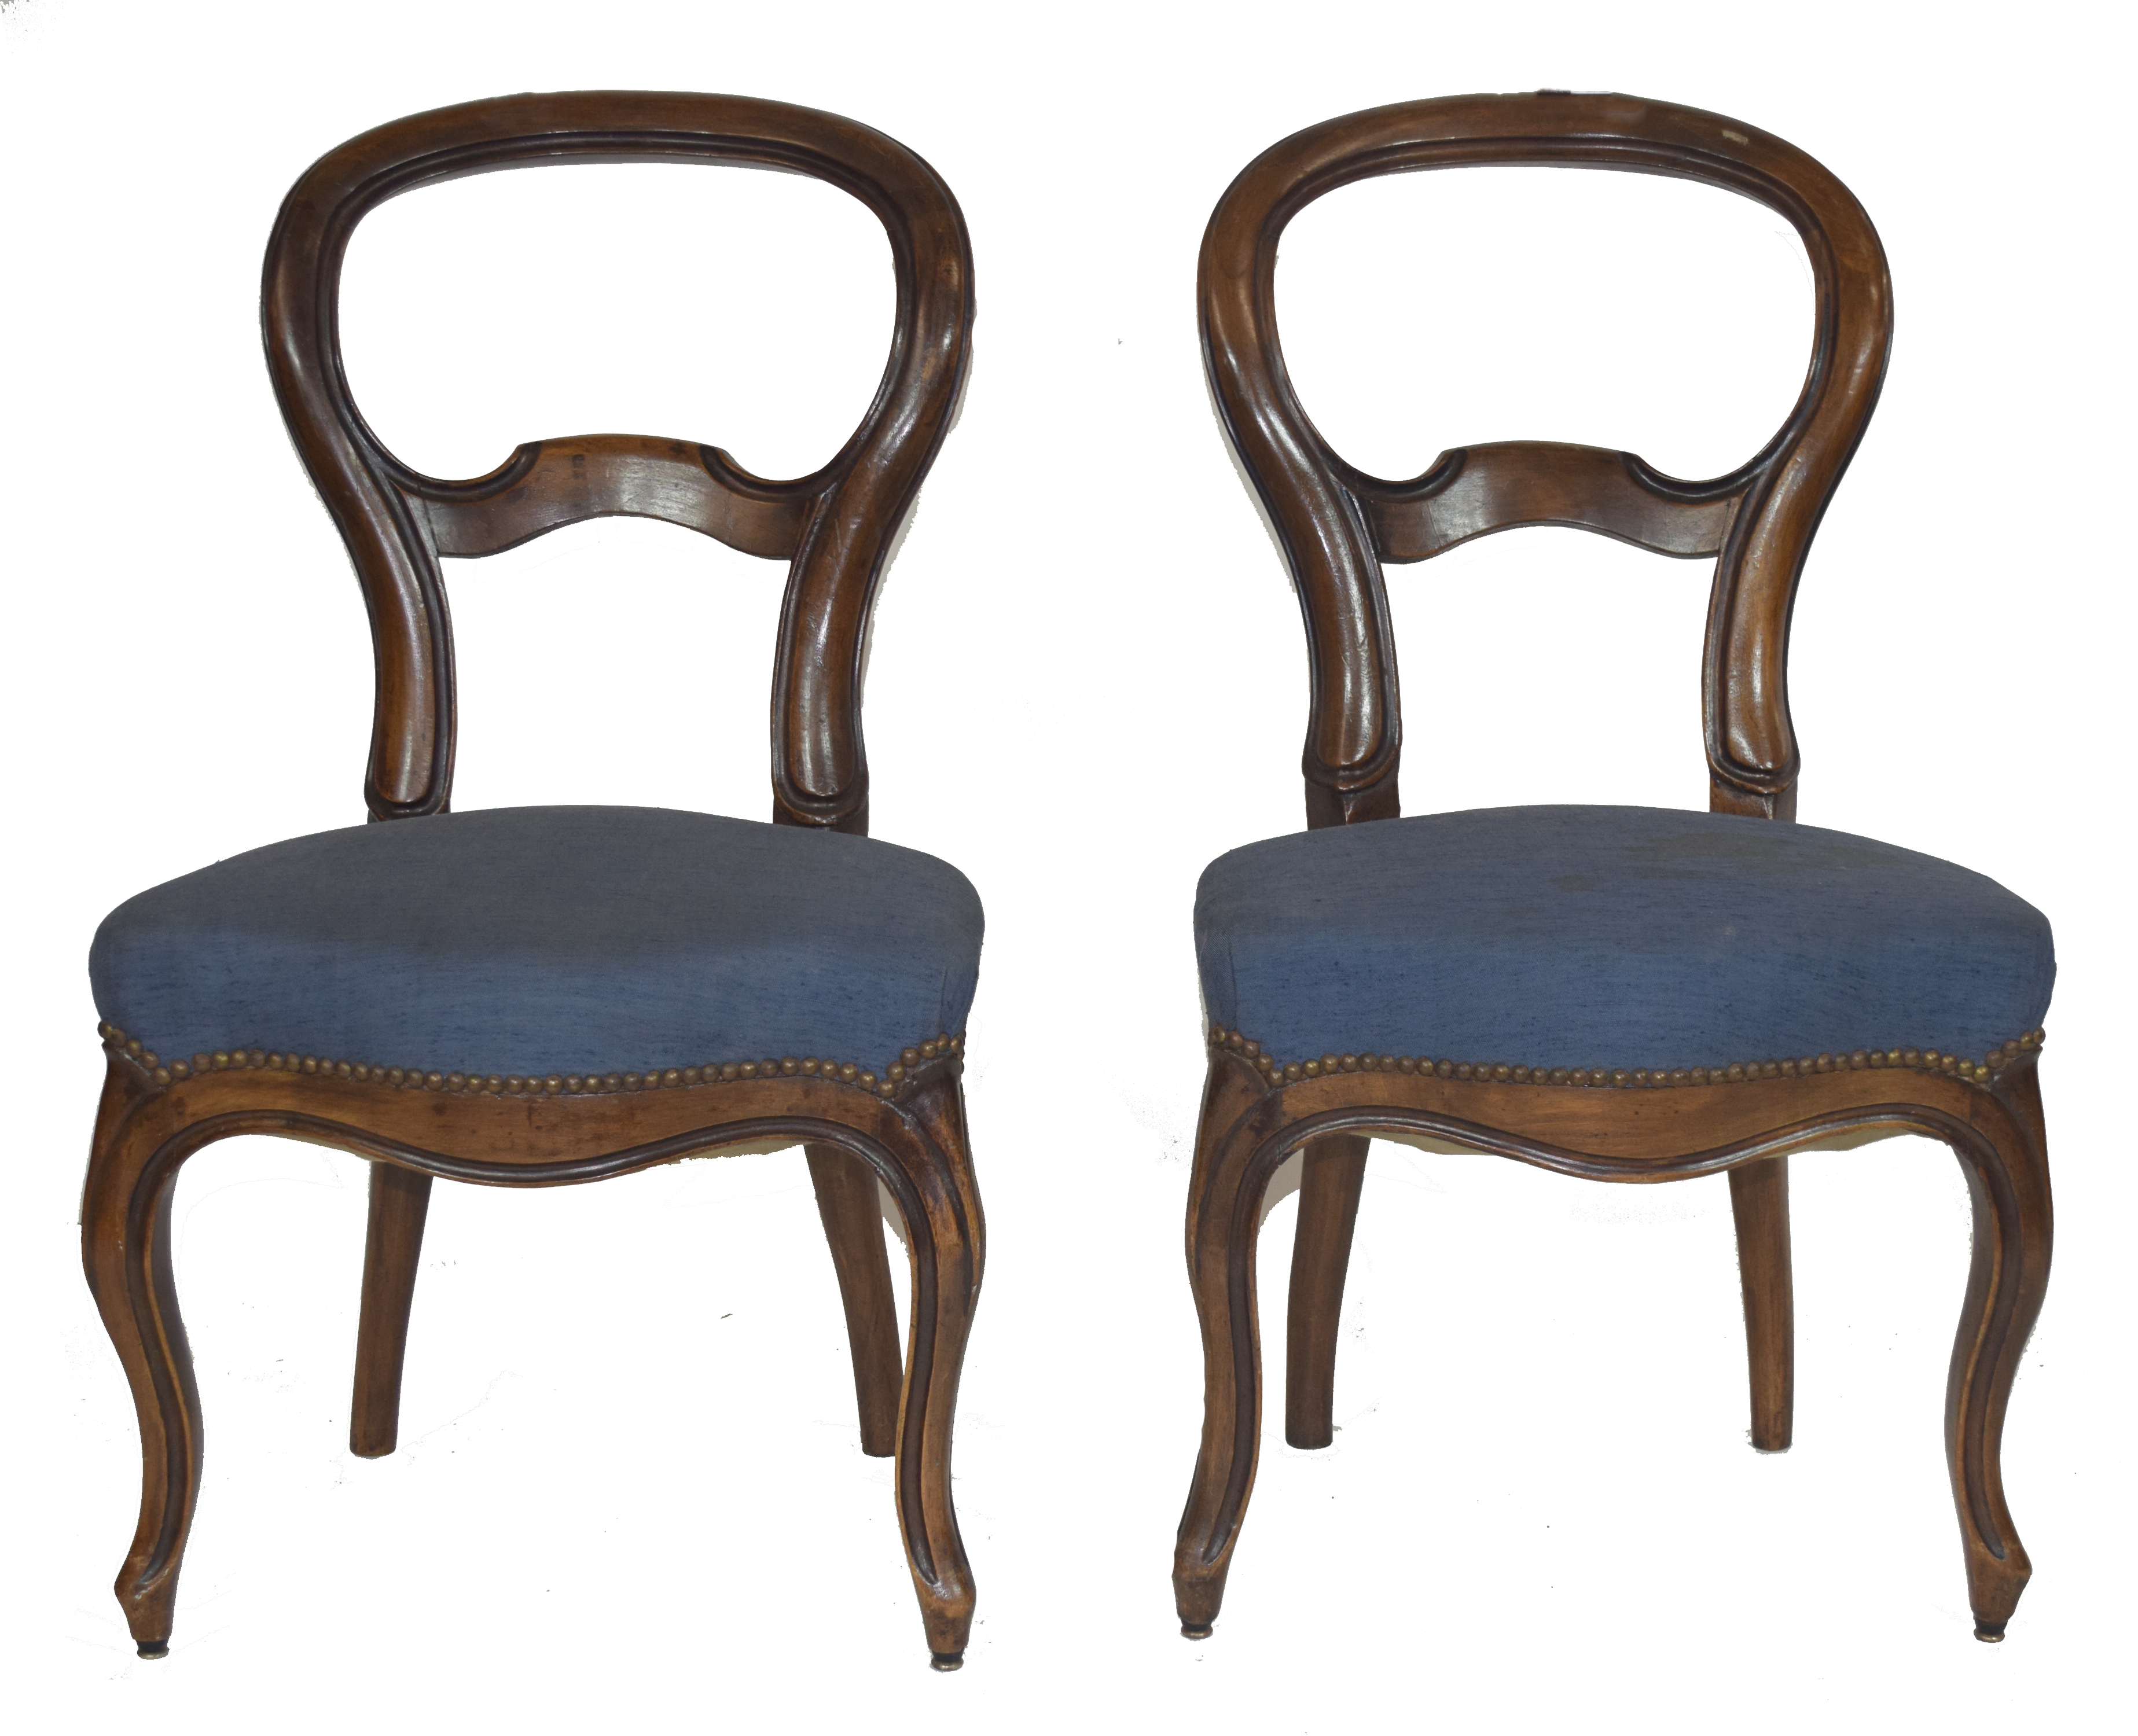 Pair of Victorian mahogany balloon back dining chairs - Image 2 of 2